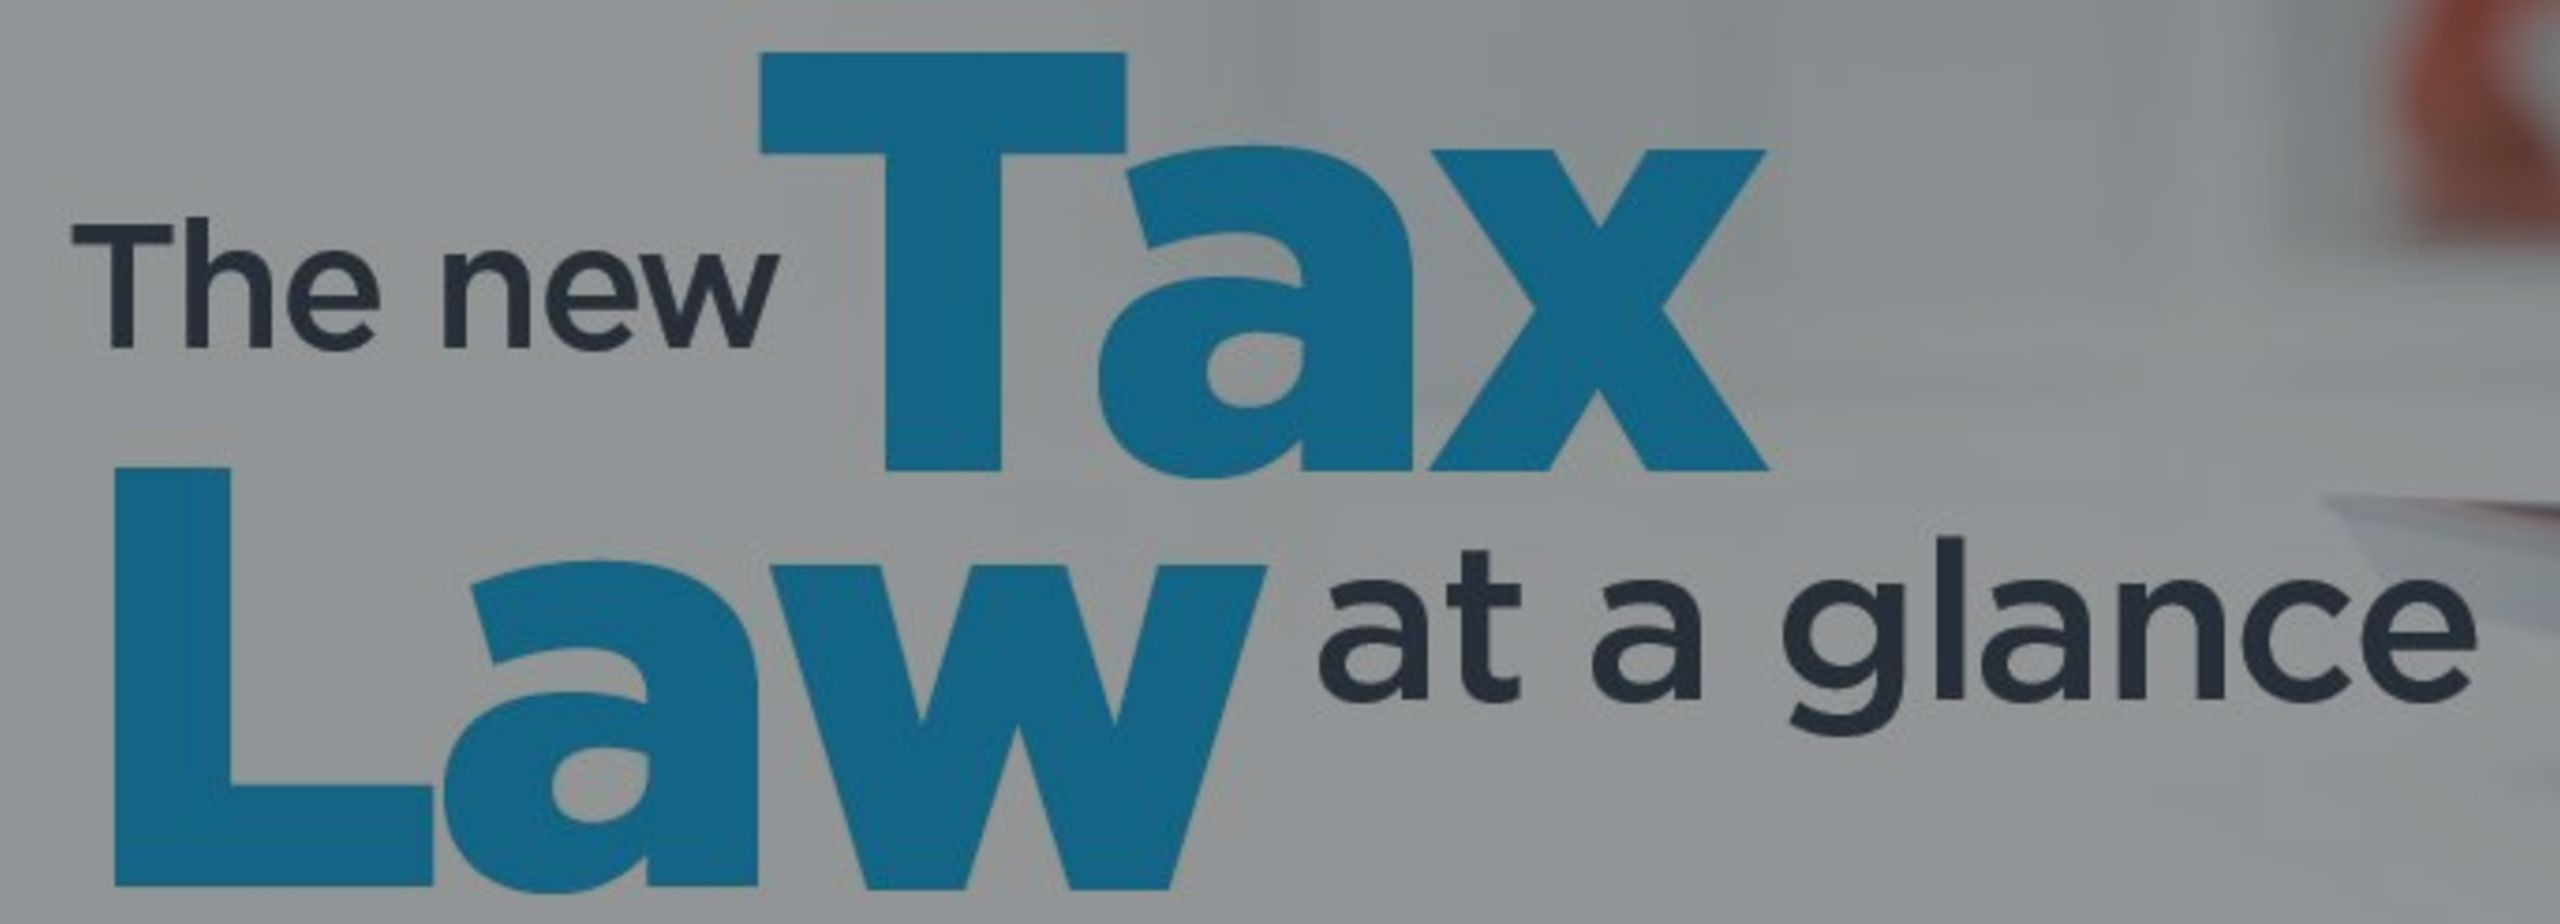 The New Tax Law at a Glance